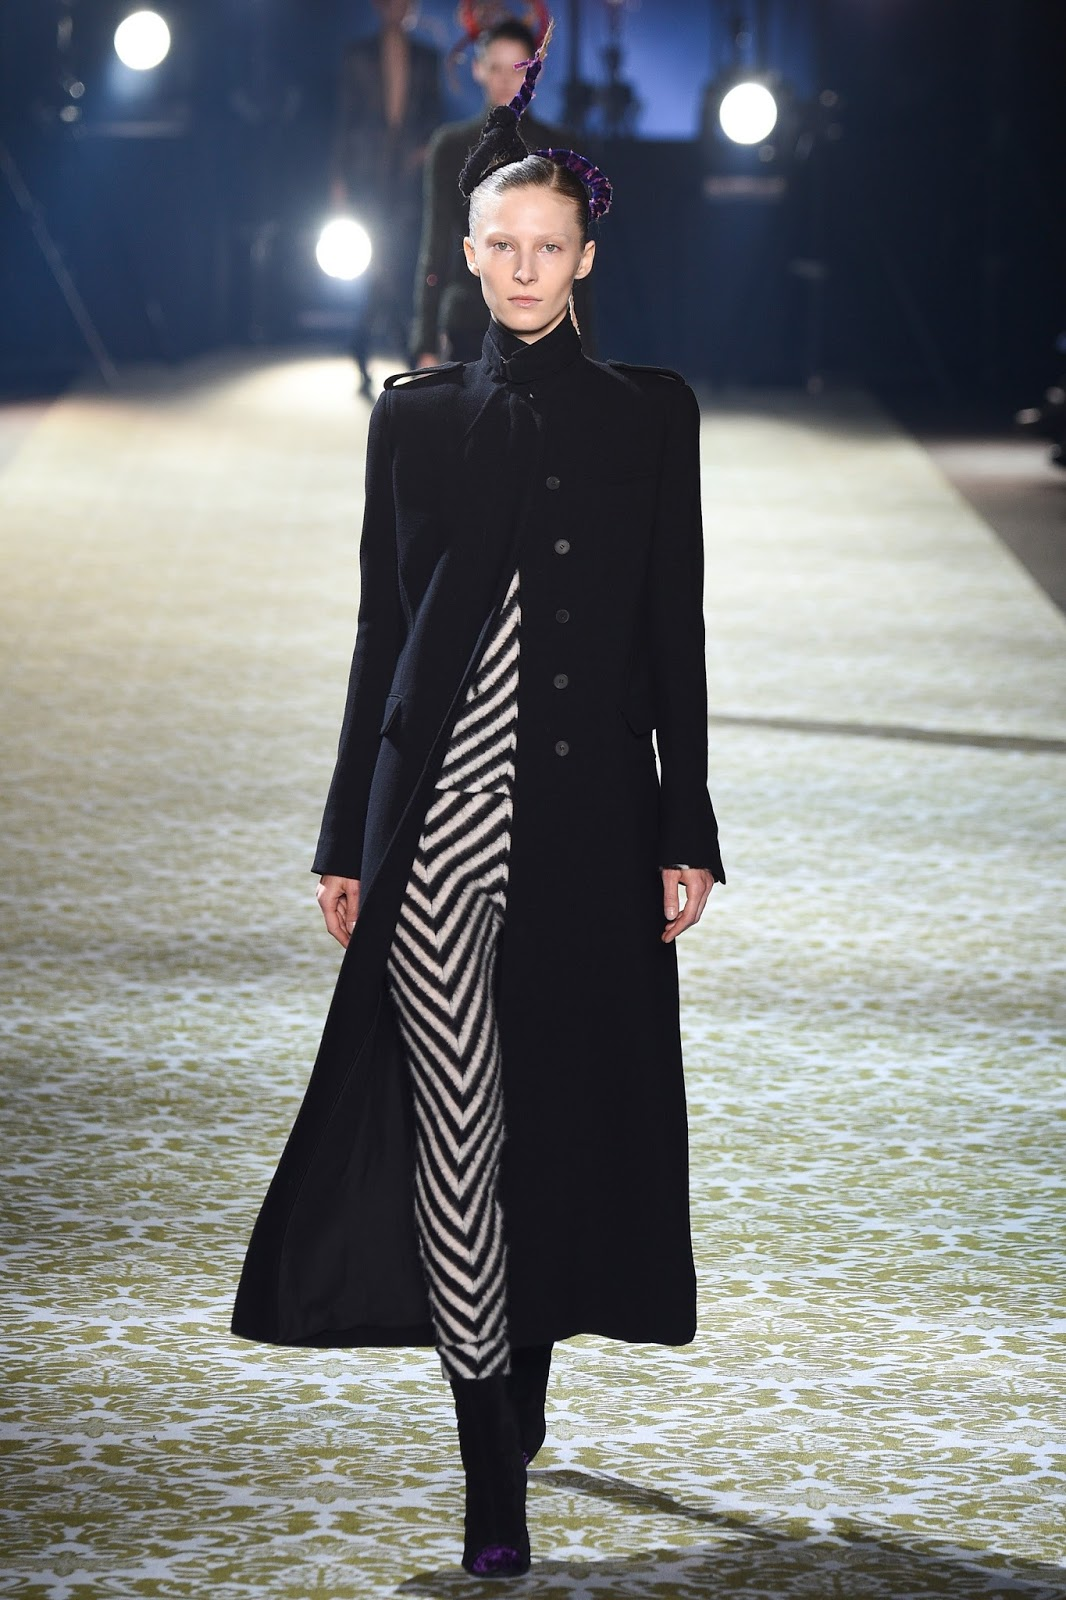 Paris fashion week best collections / Haider Ackermann Fall/Winter 2016 via www.fashionedbylove.co.uk british fashion blog